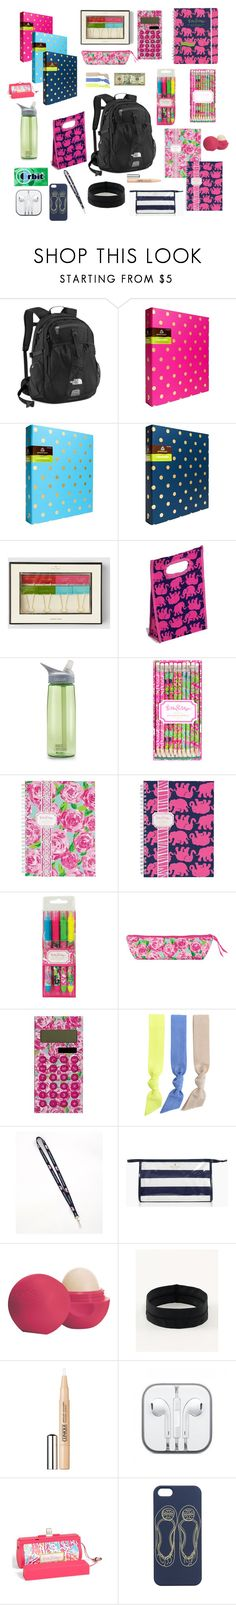 """""""What's in my school backpack"""" by preppyprep101 ❤ liked on Polyvore featuring The North Face, Kate Spade, Lilly Pulitzer, CamelBak, Splendid, Vineyard Vines, Eos, lululemon, Clinique and Tory Burch"""